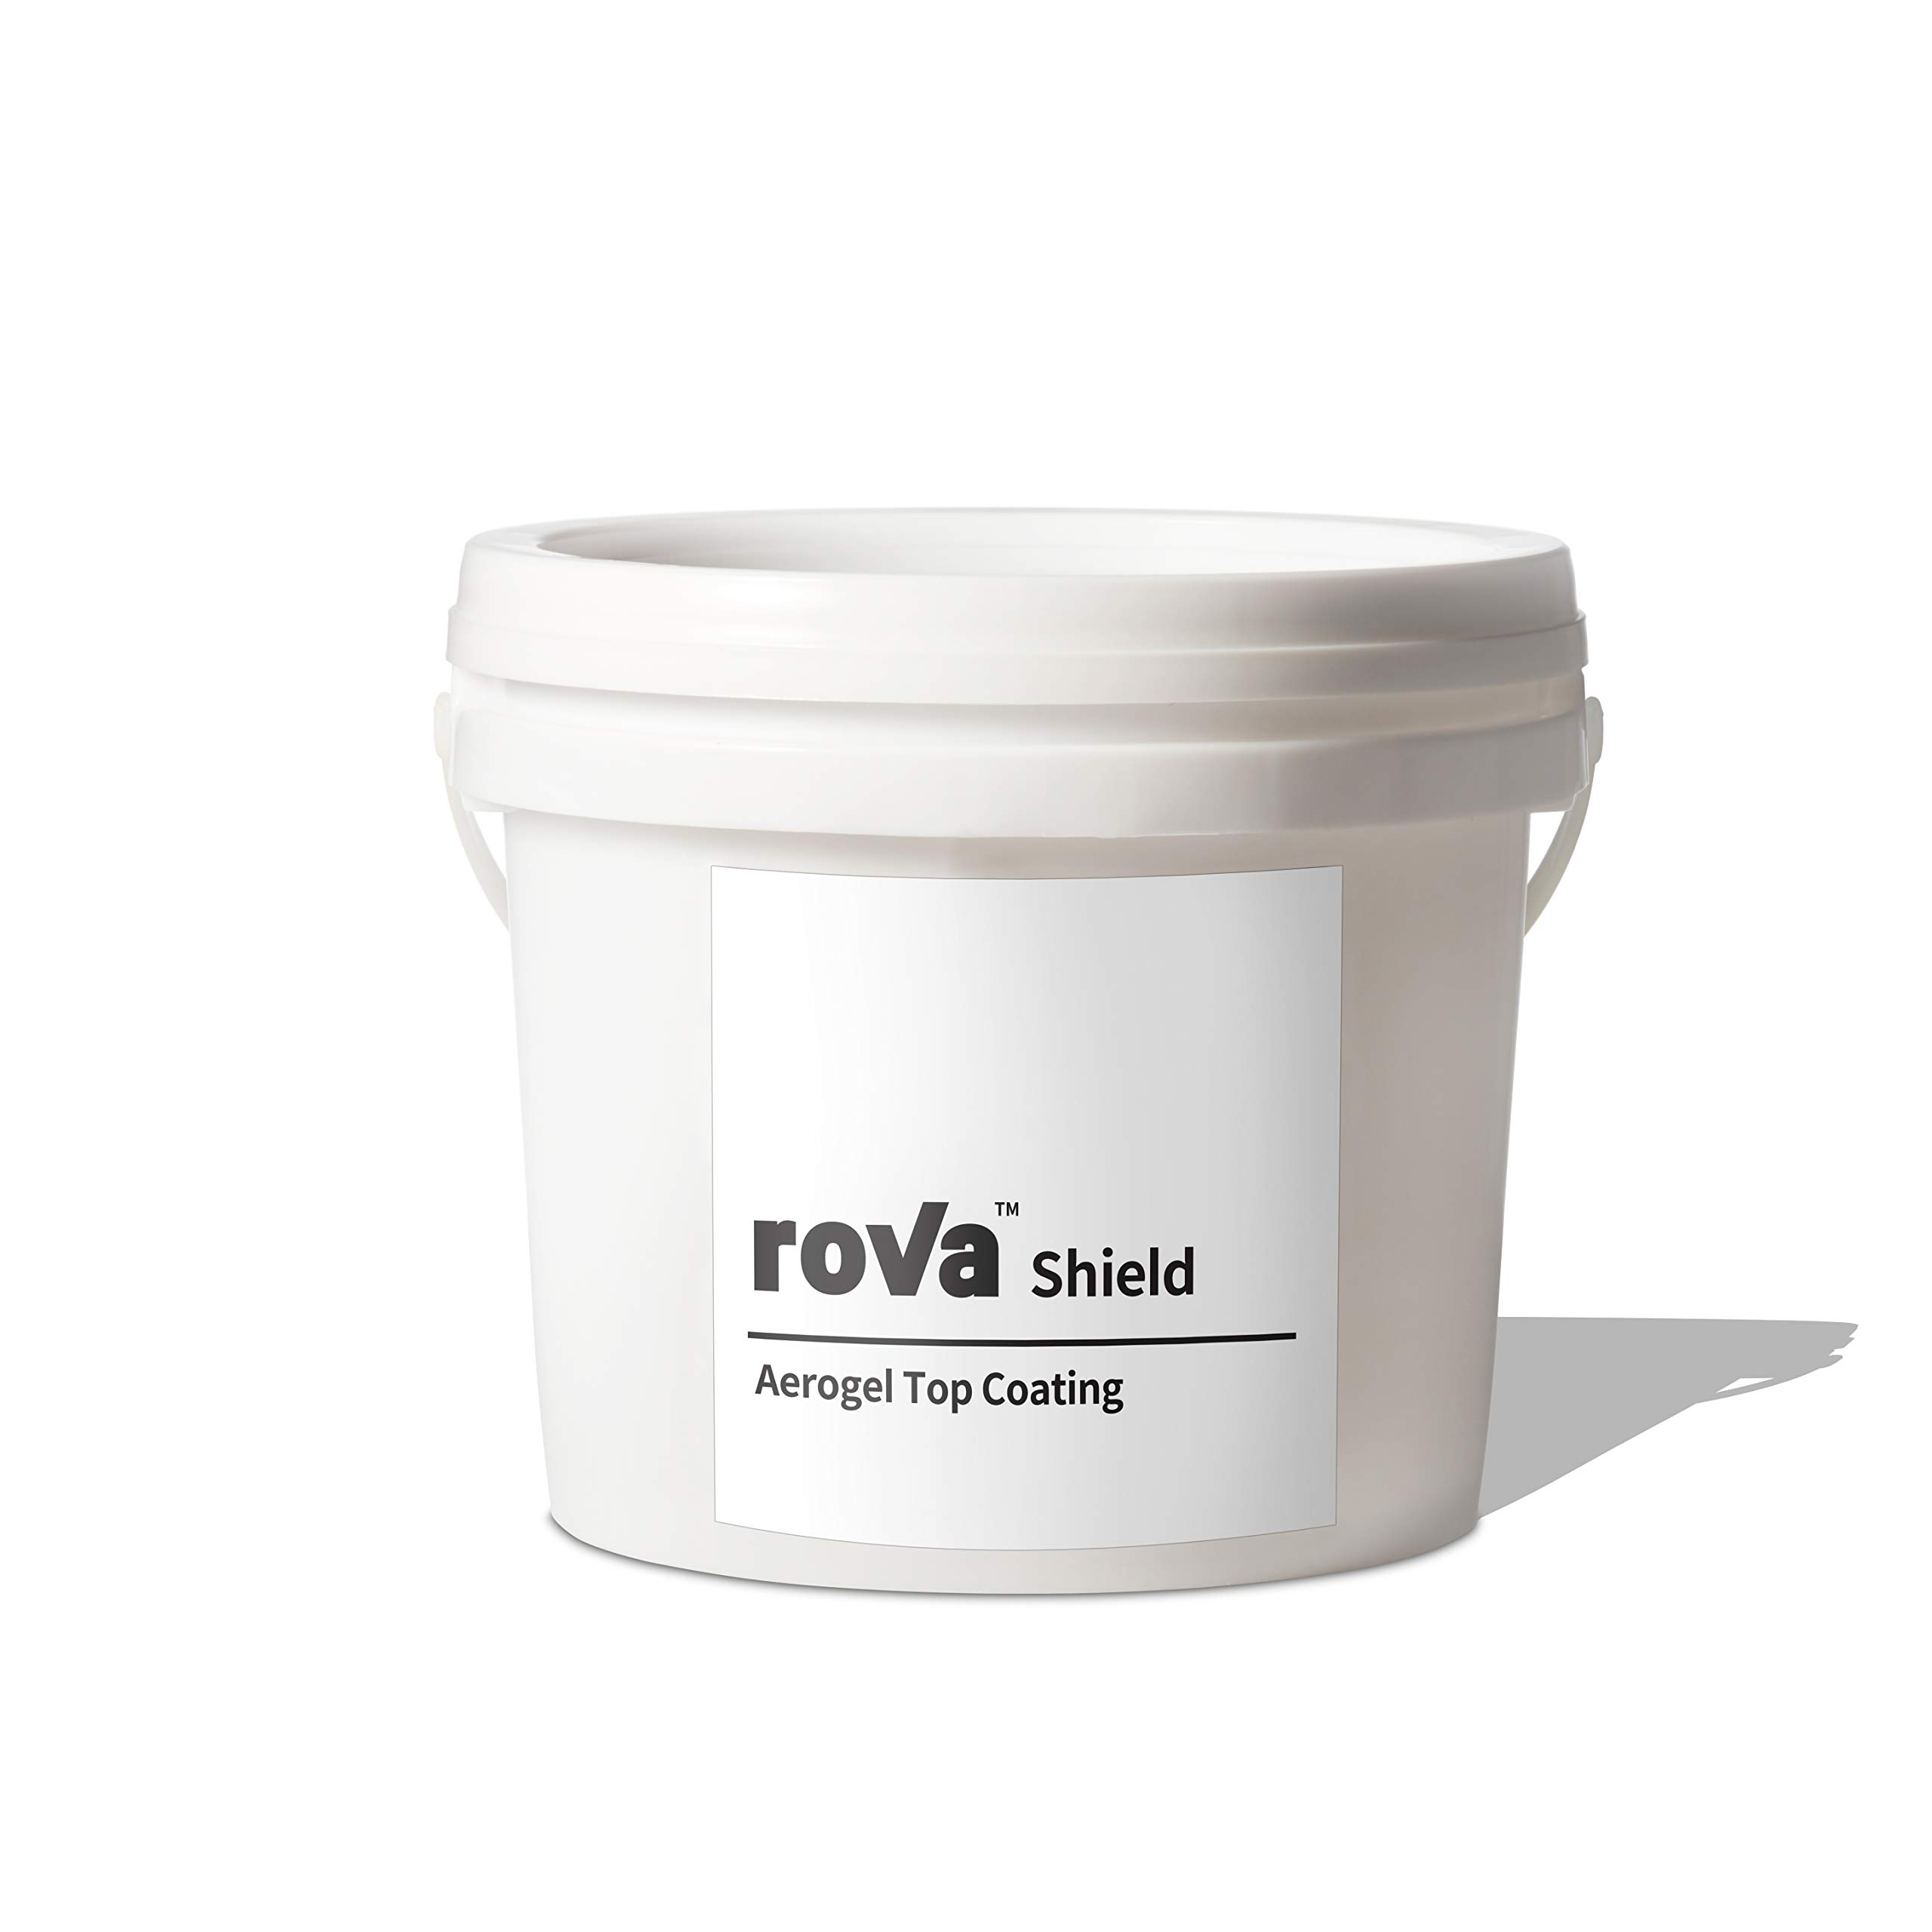 roVa Shield Aerogel Top Coating, Color White 1 Quart (1 Liter) by roVa